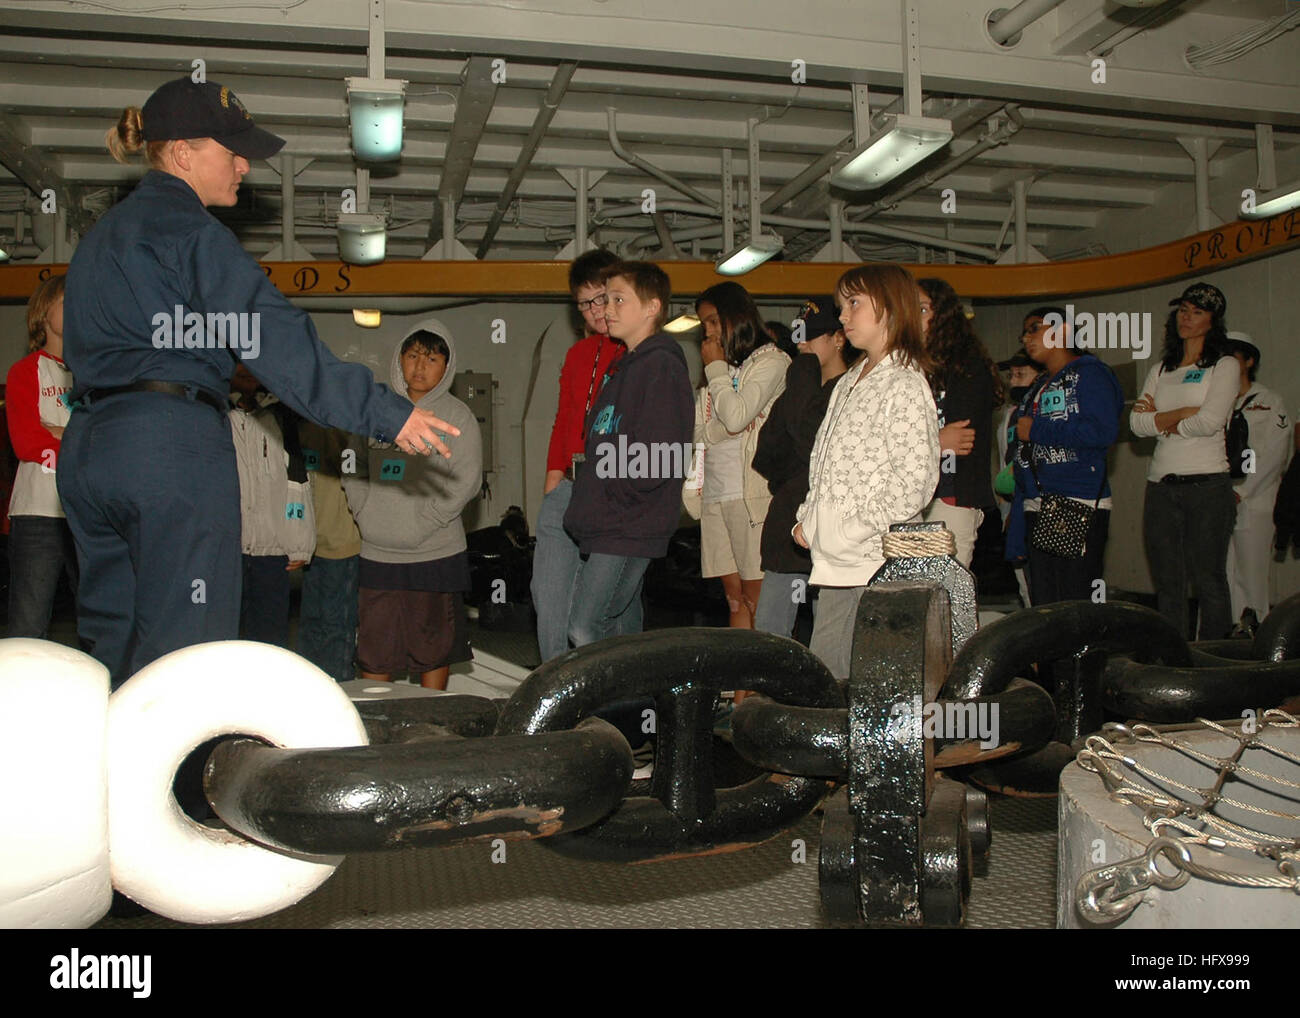 090515-N-7451A-001  SAN DIEGO (May 15, 2009) Boatswain Mate 2nd Class Ashley Bevan explains the anchor chain to Stock Photo